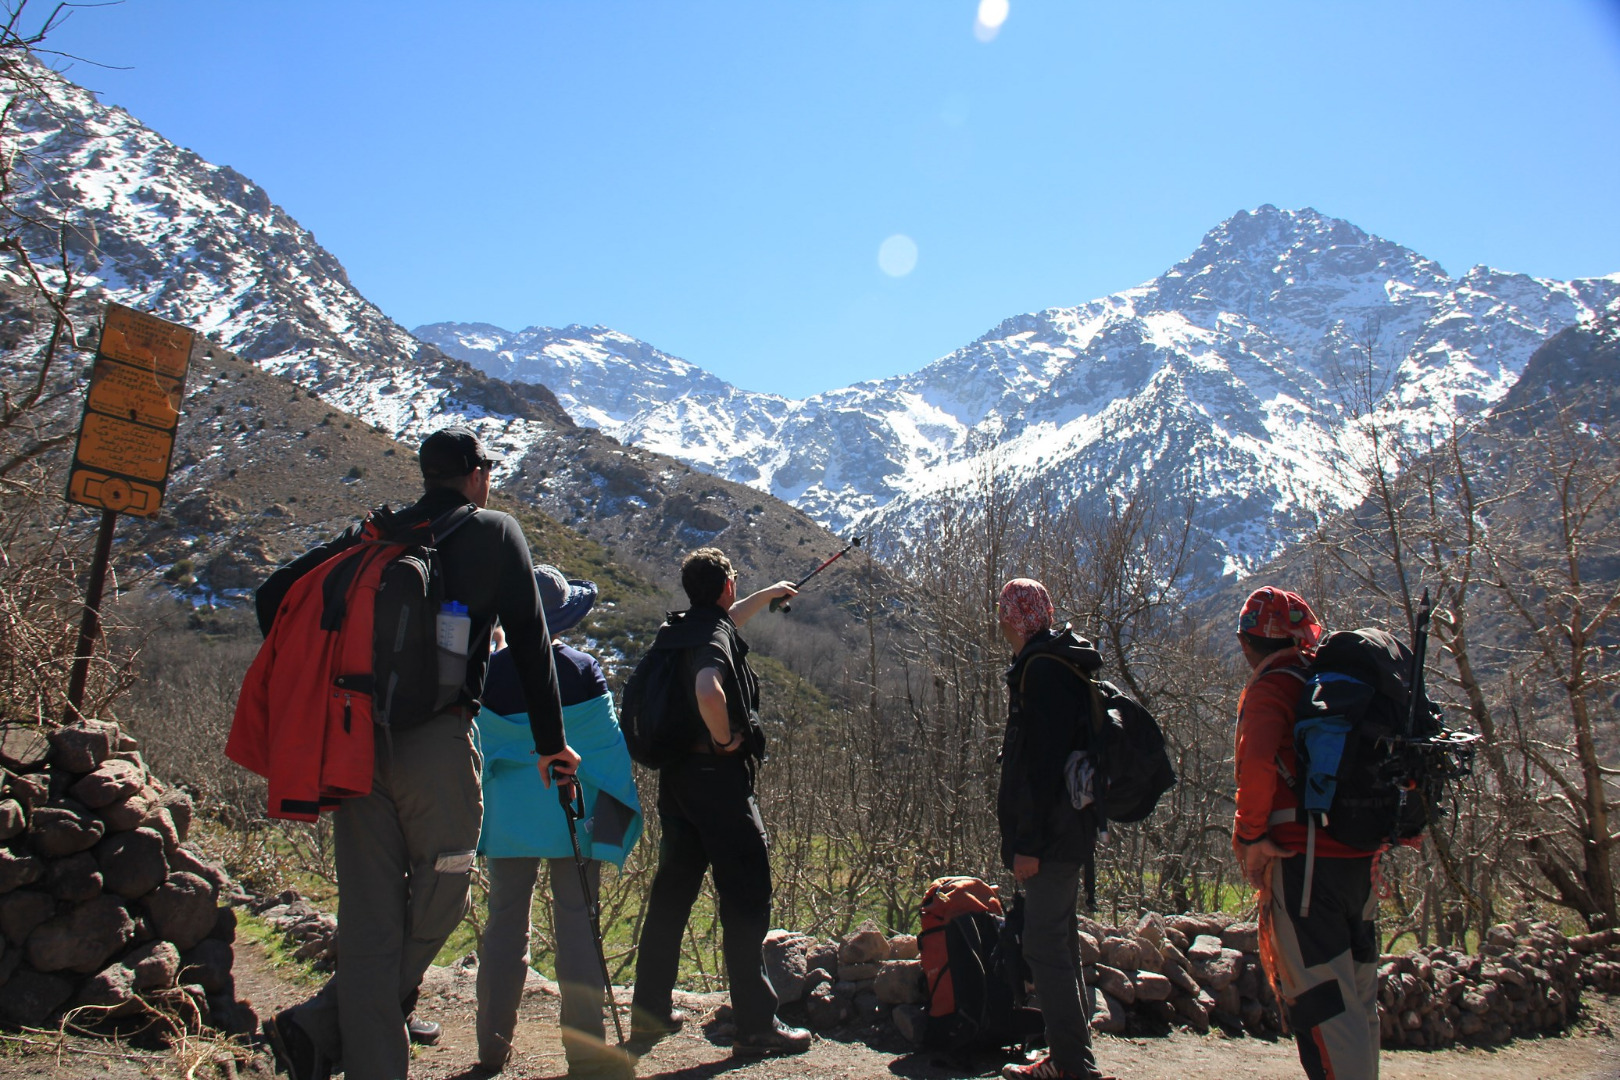 Berber villages & Atlas Mountains Via Sahara Desert 5 days 4 nights combined From Marrakech